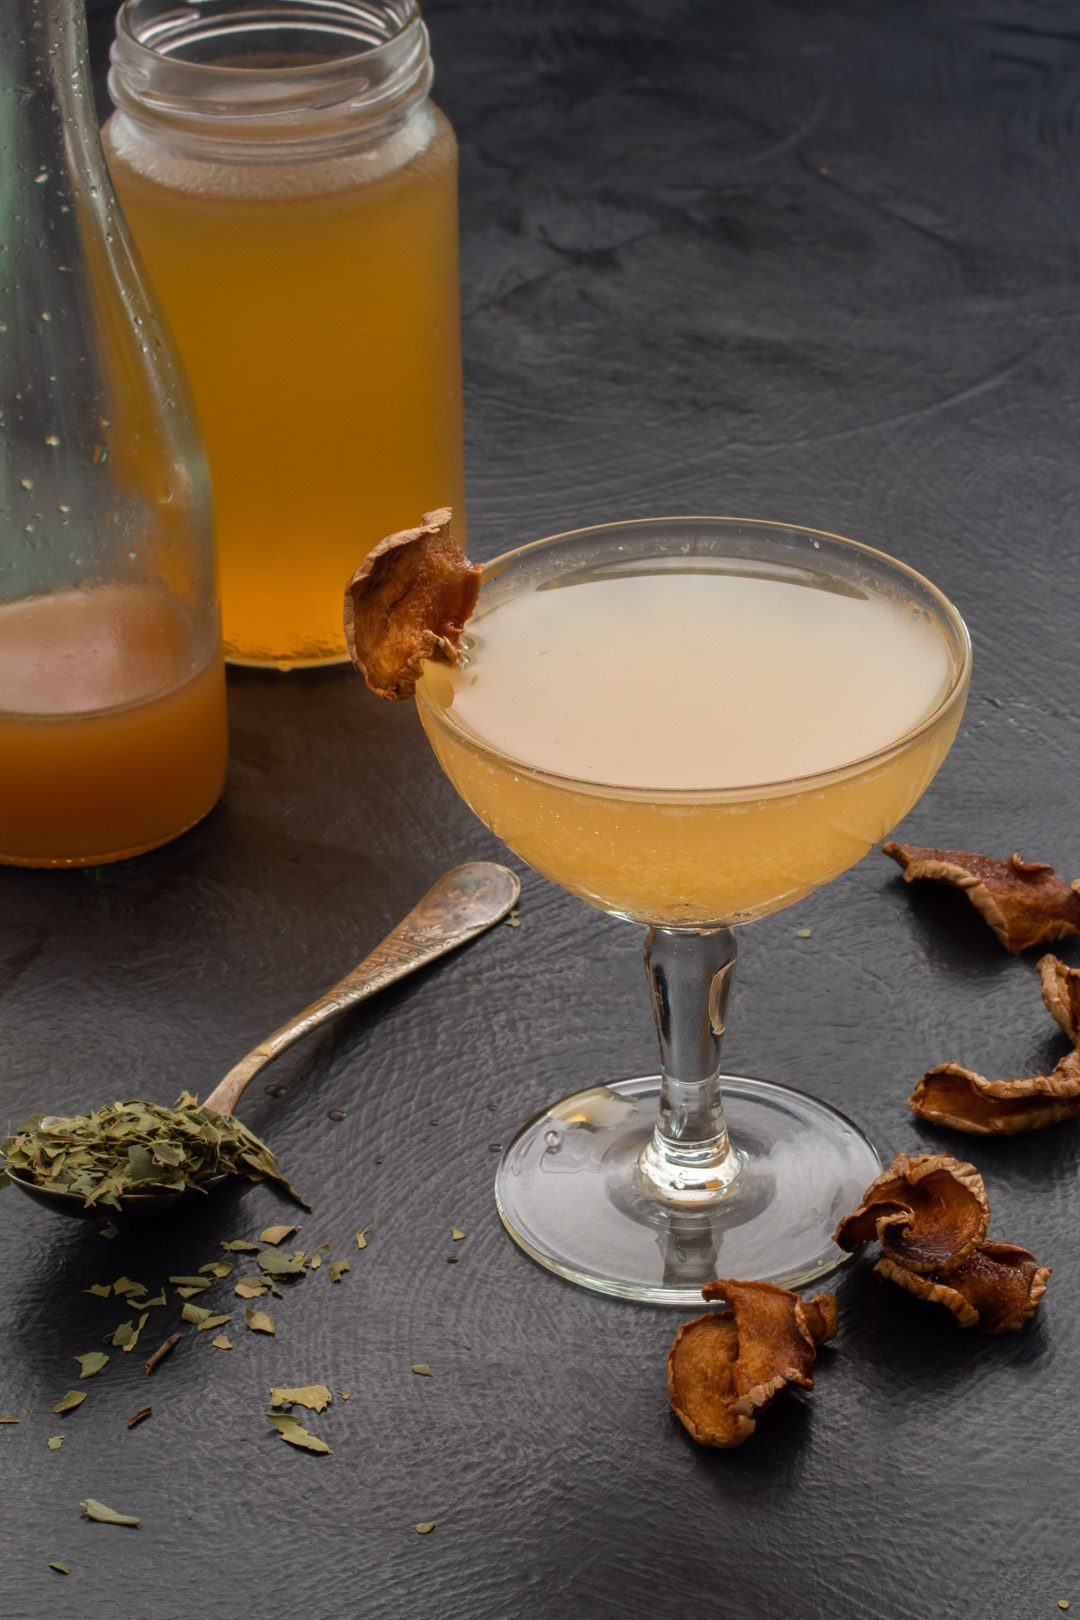 Ginger lime shrub daiquiri with cinnamon myrtle and ginger crisps: 45 degrees making, negative space